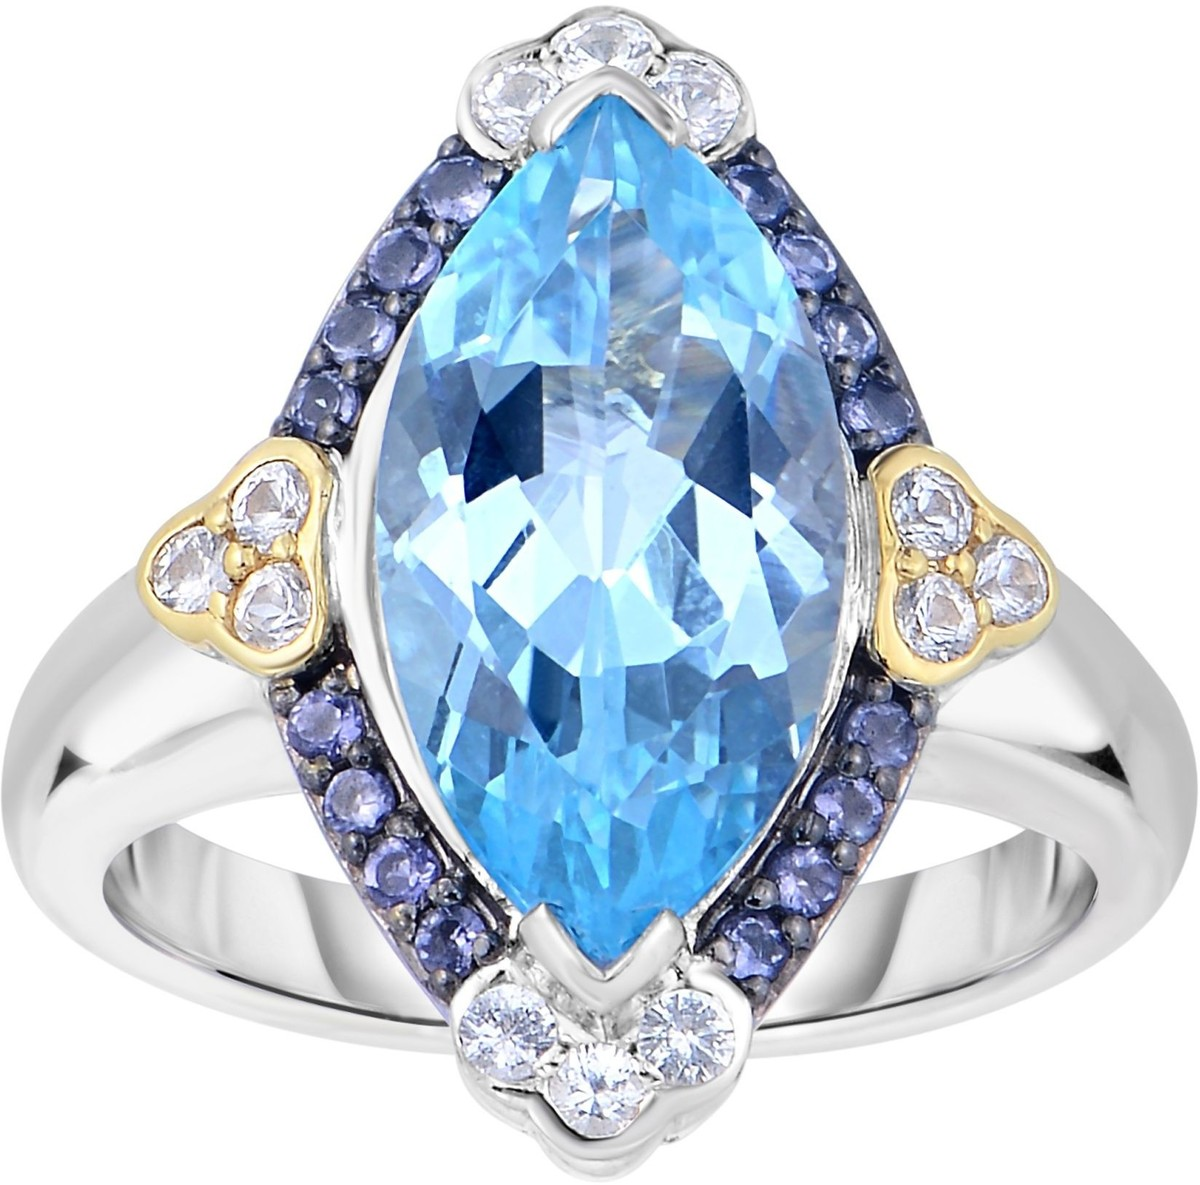 Phillip Gavriel - 18K Yellow Gold & Silver Marquise Sky Blue Topaz Ring w/ Rhodolite Garnet & White Synthetic Sapphire